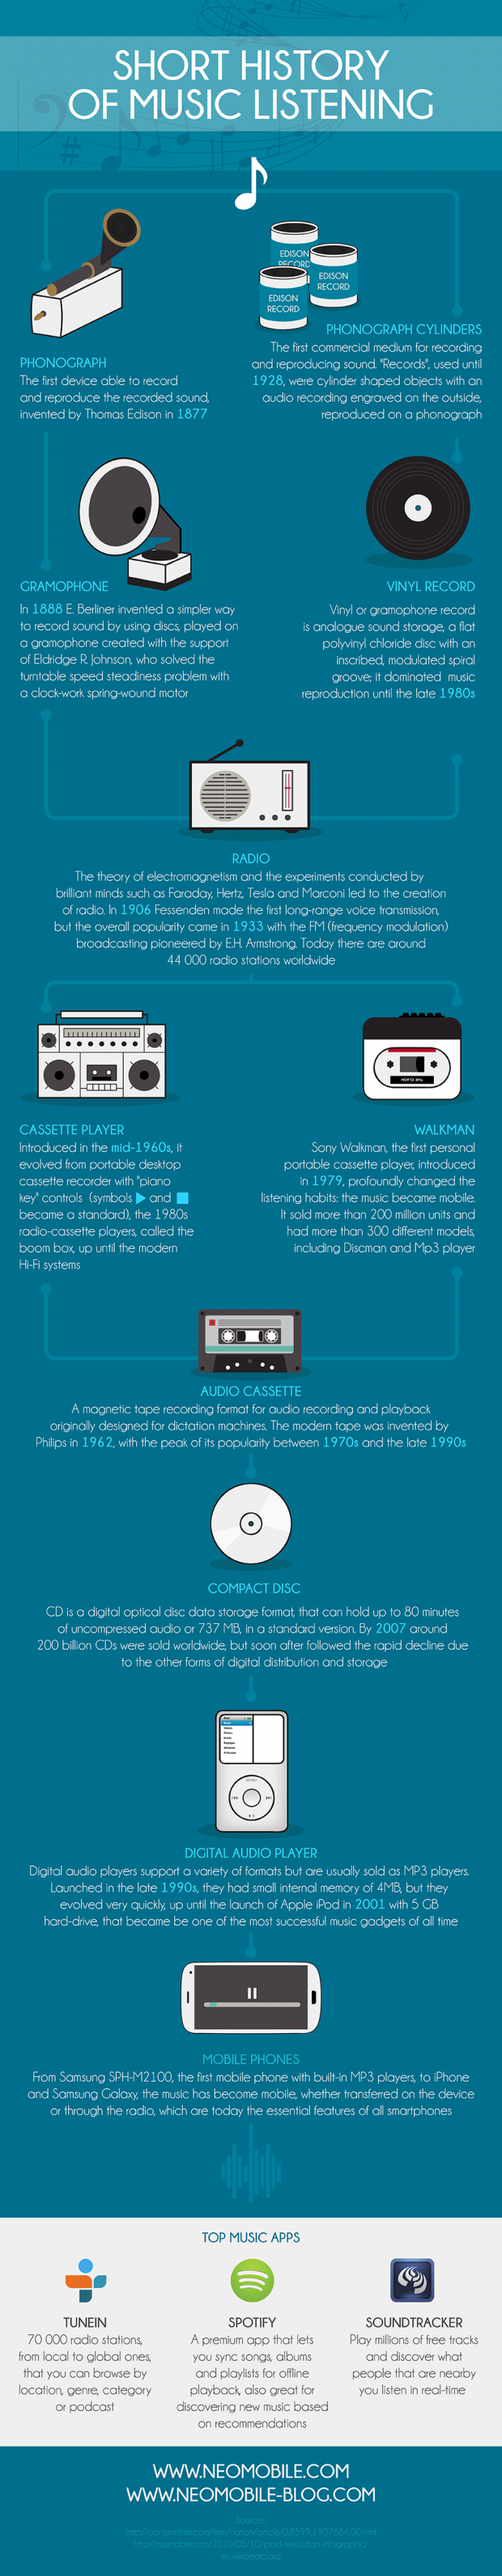 Short history of Music listening